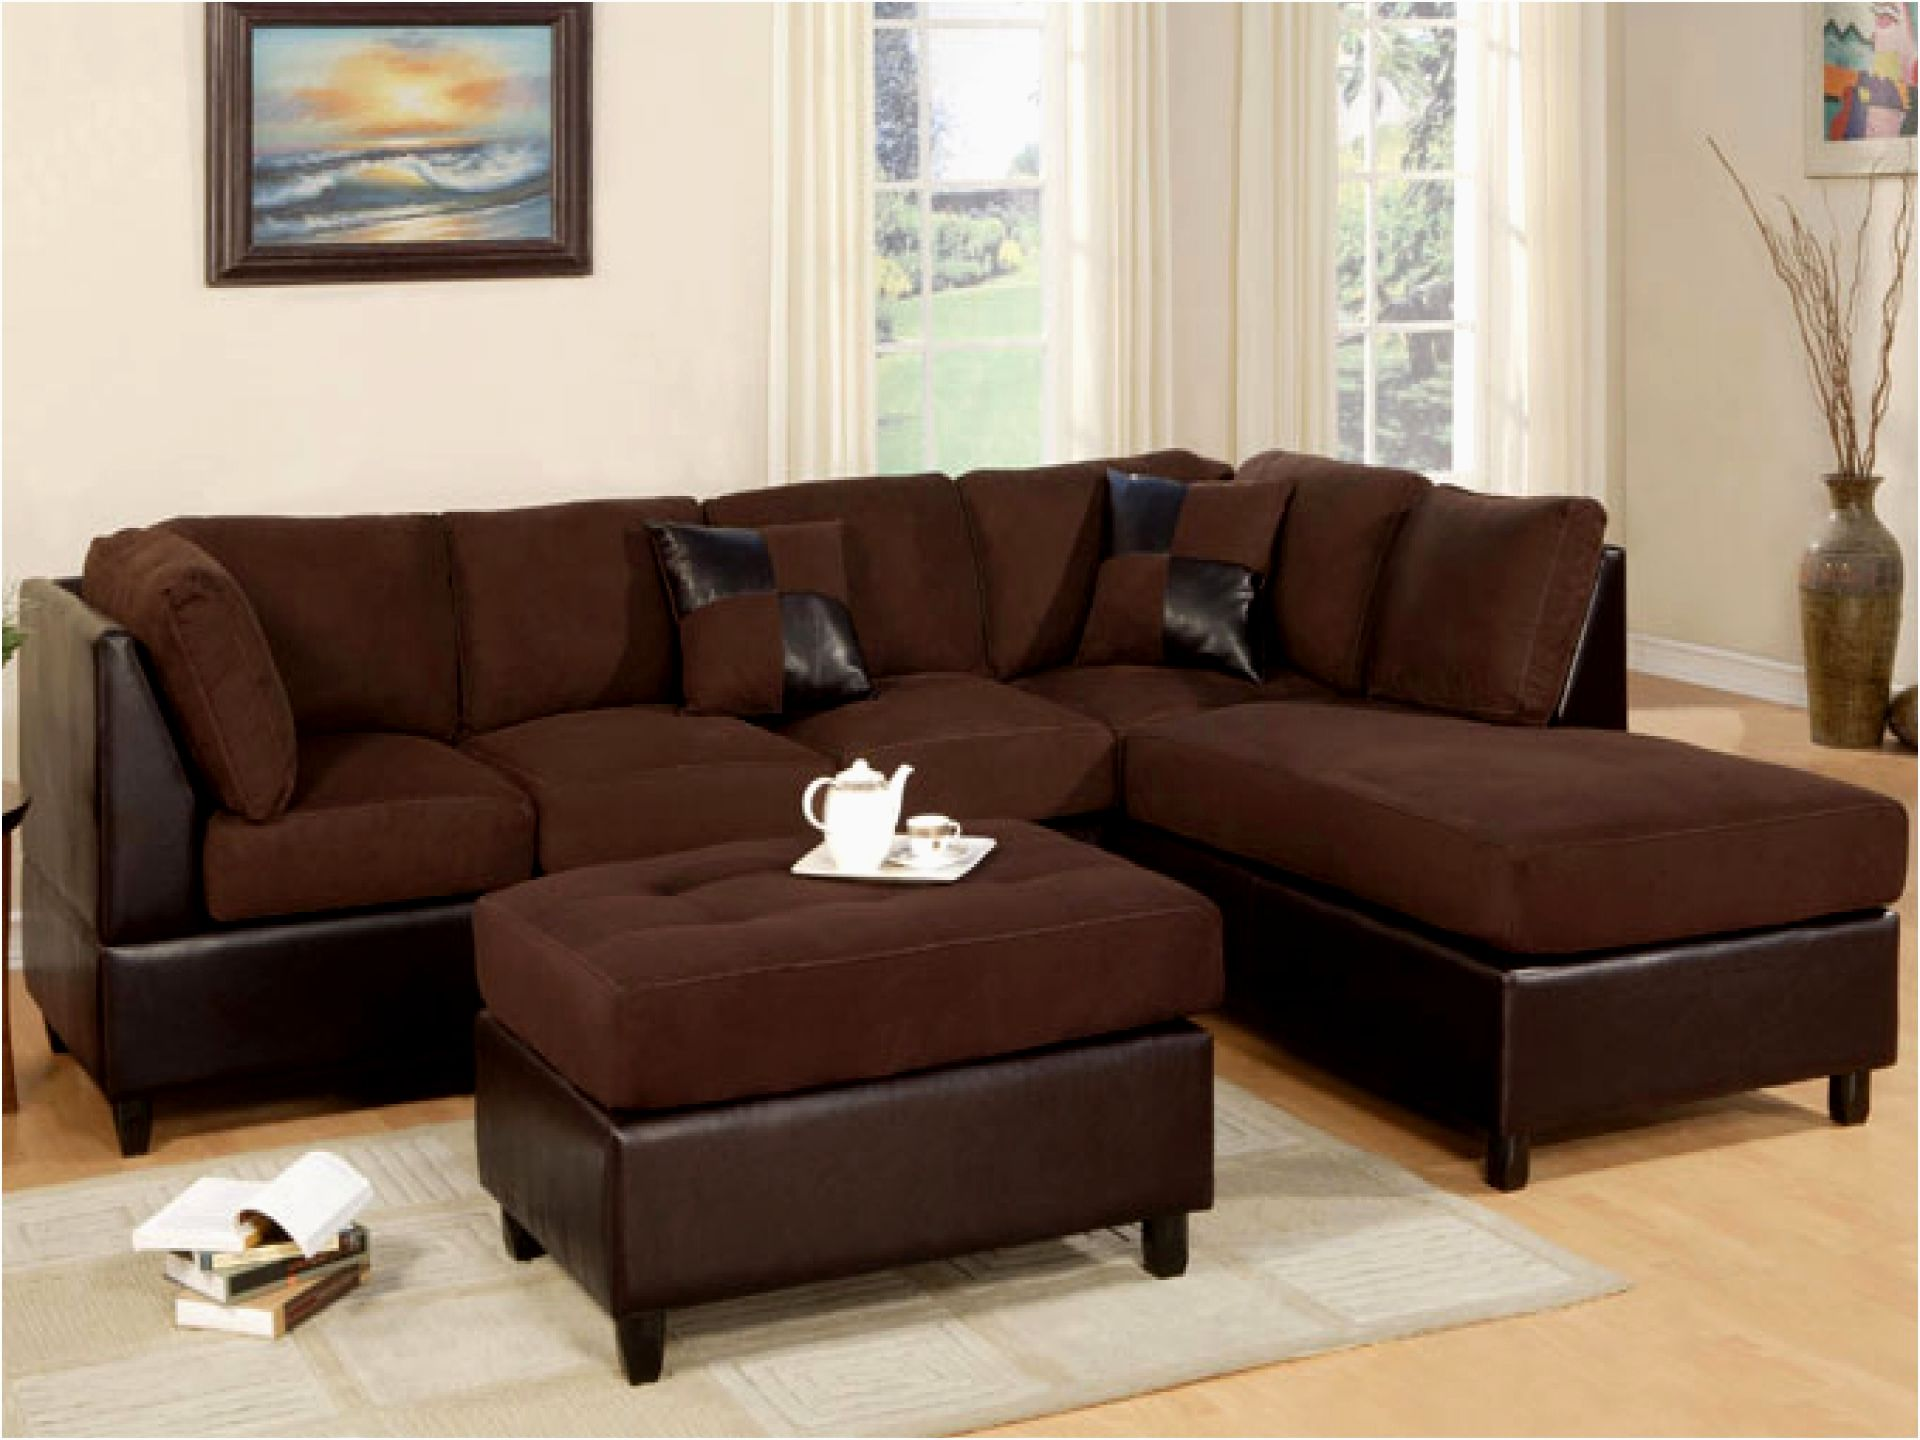 unique sectional sofas under $500 picture-Lovely Sectional sofas Under $500 Ideas